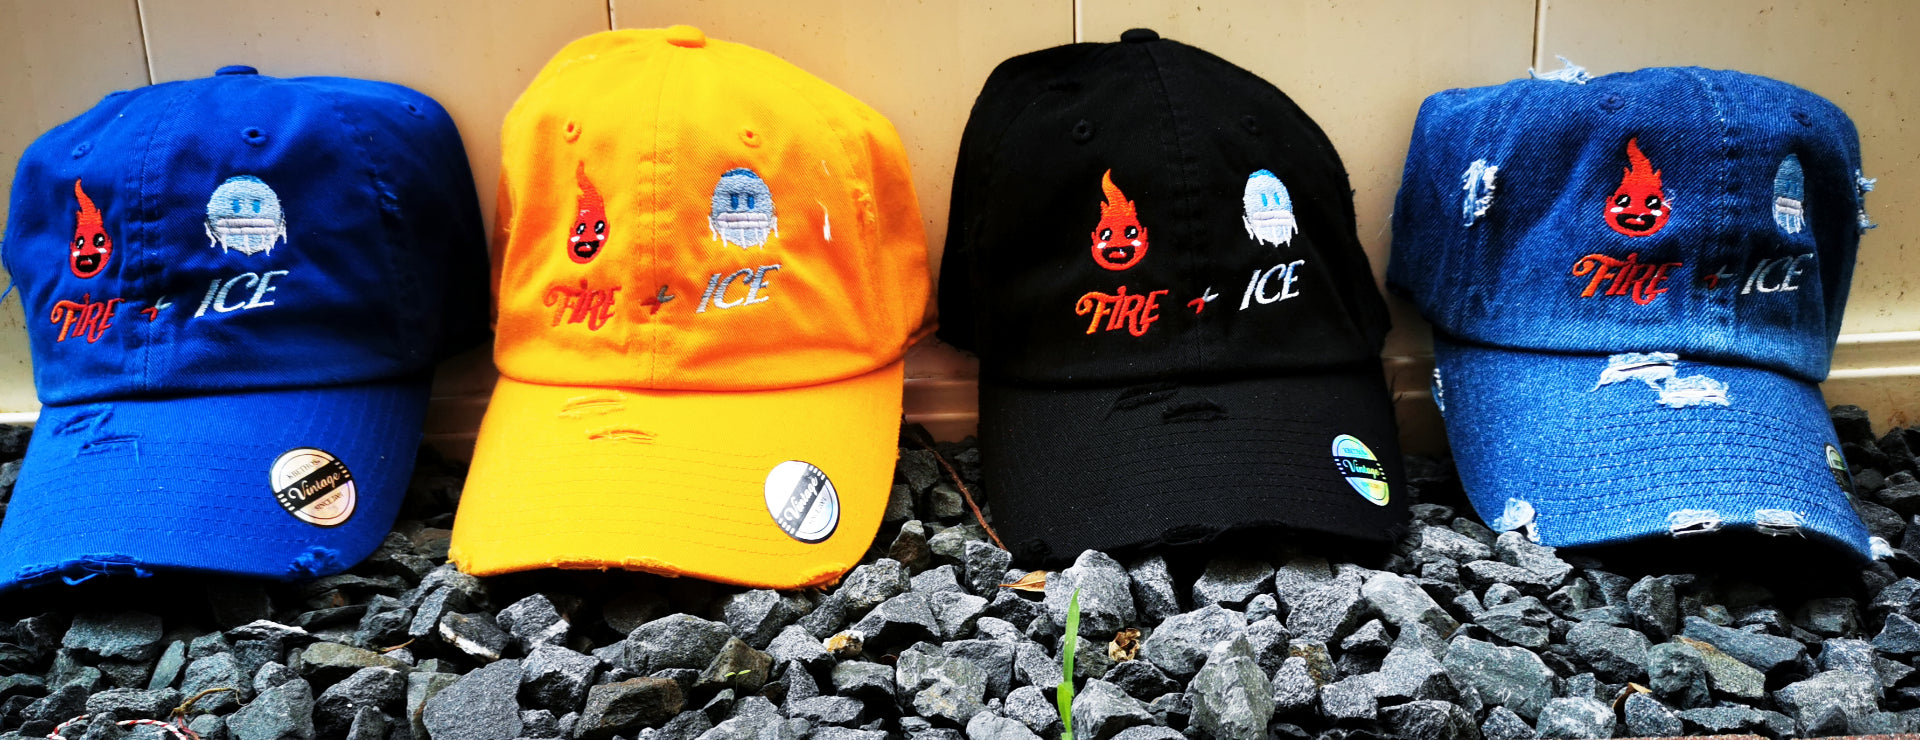 Fire & Ice Hats